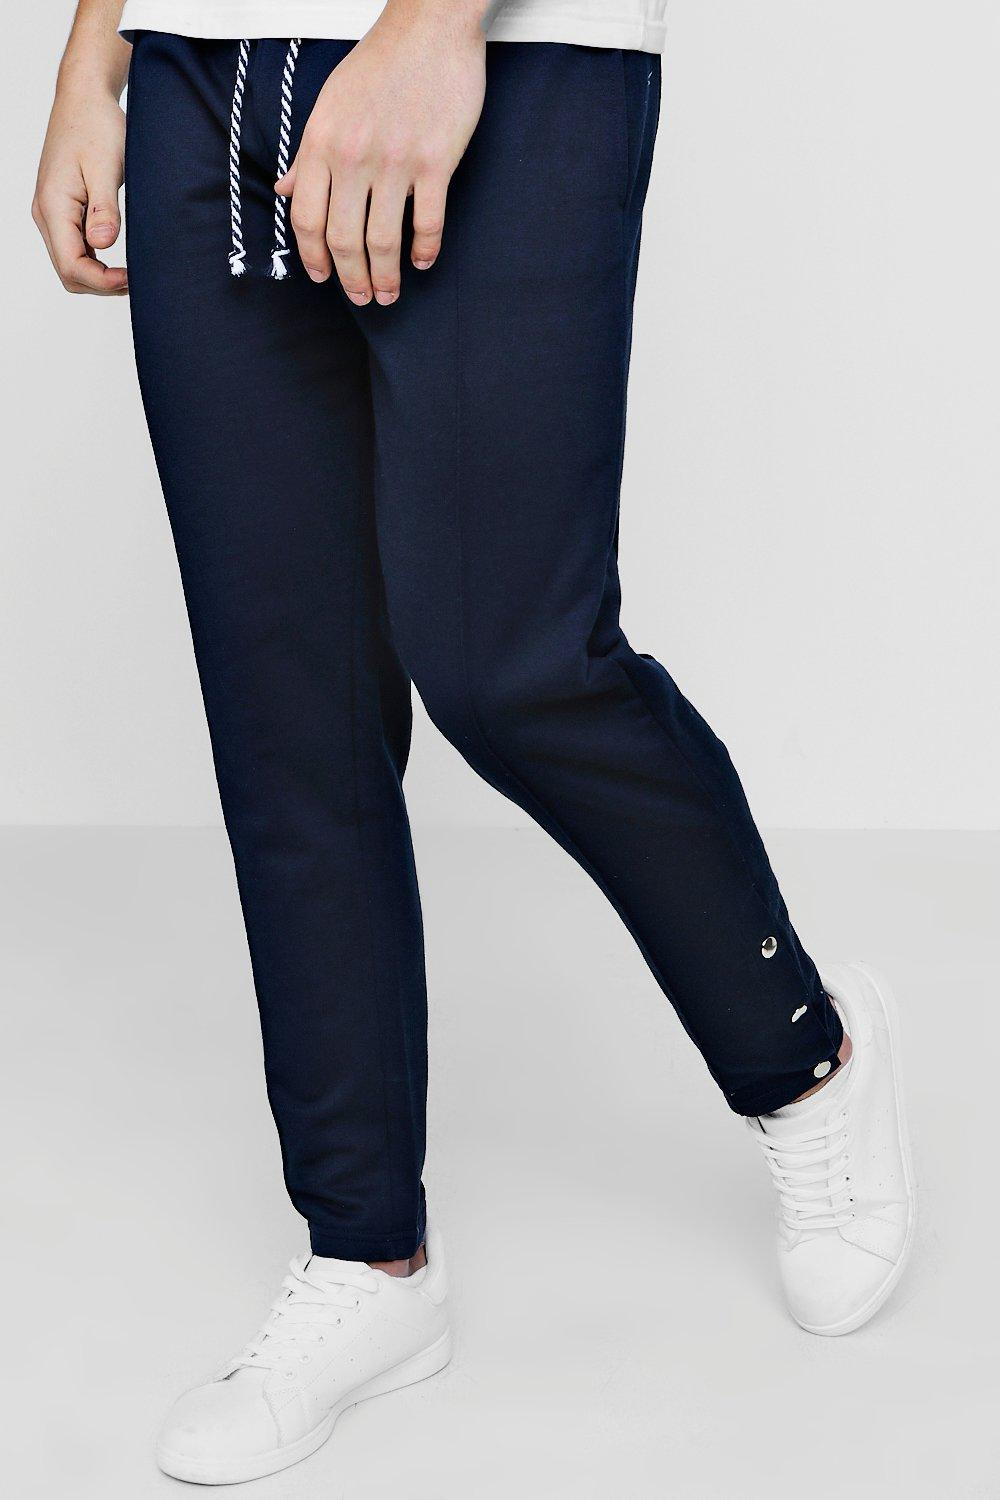 POPPER JOGGER PANT - The Executive Line